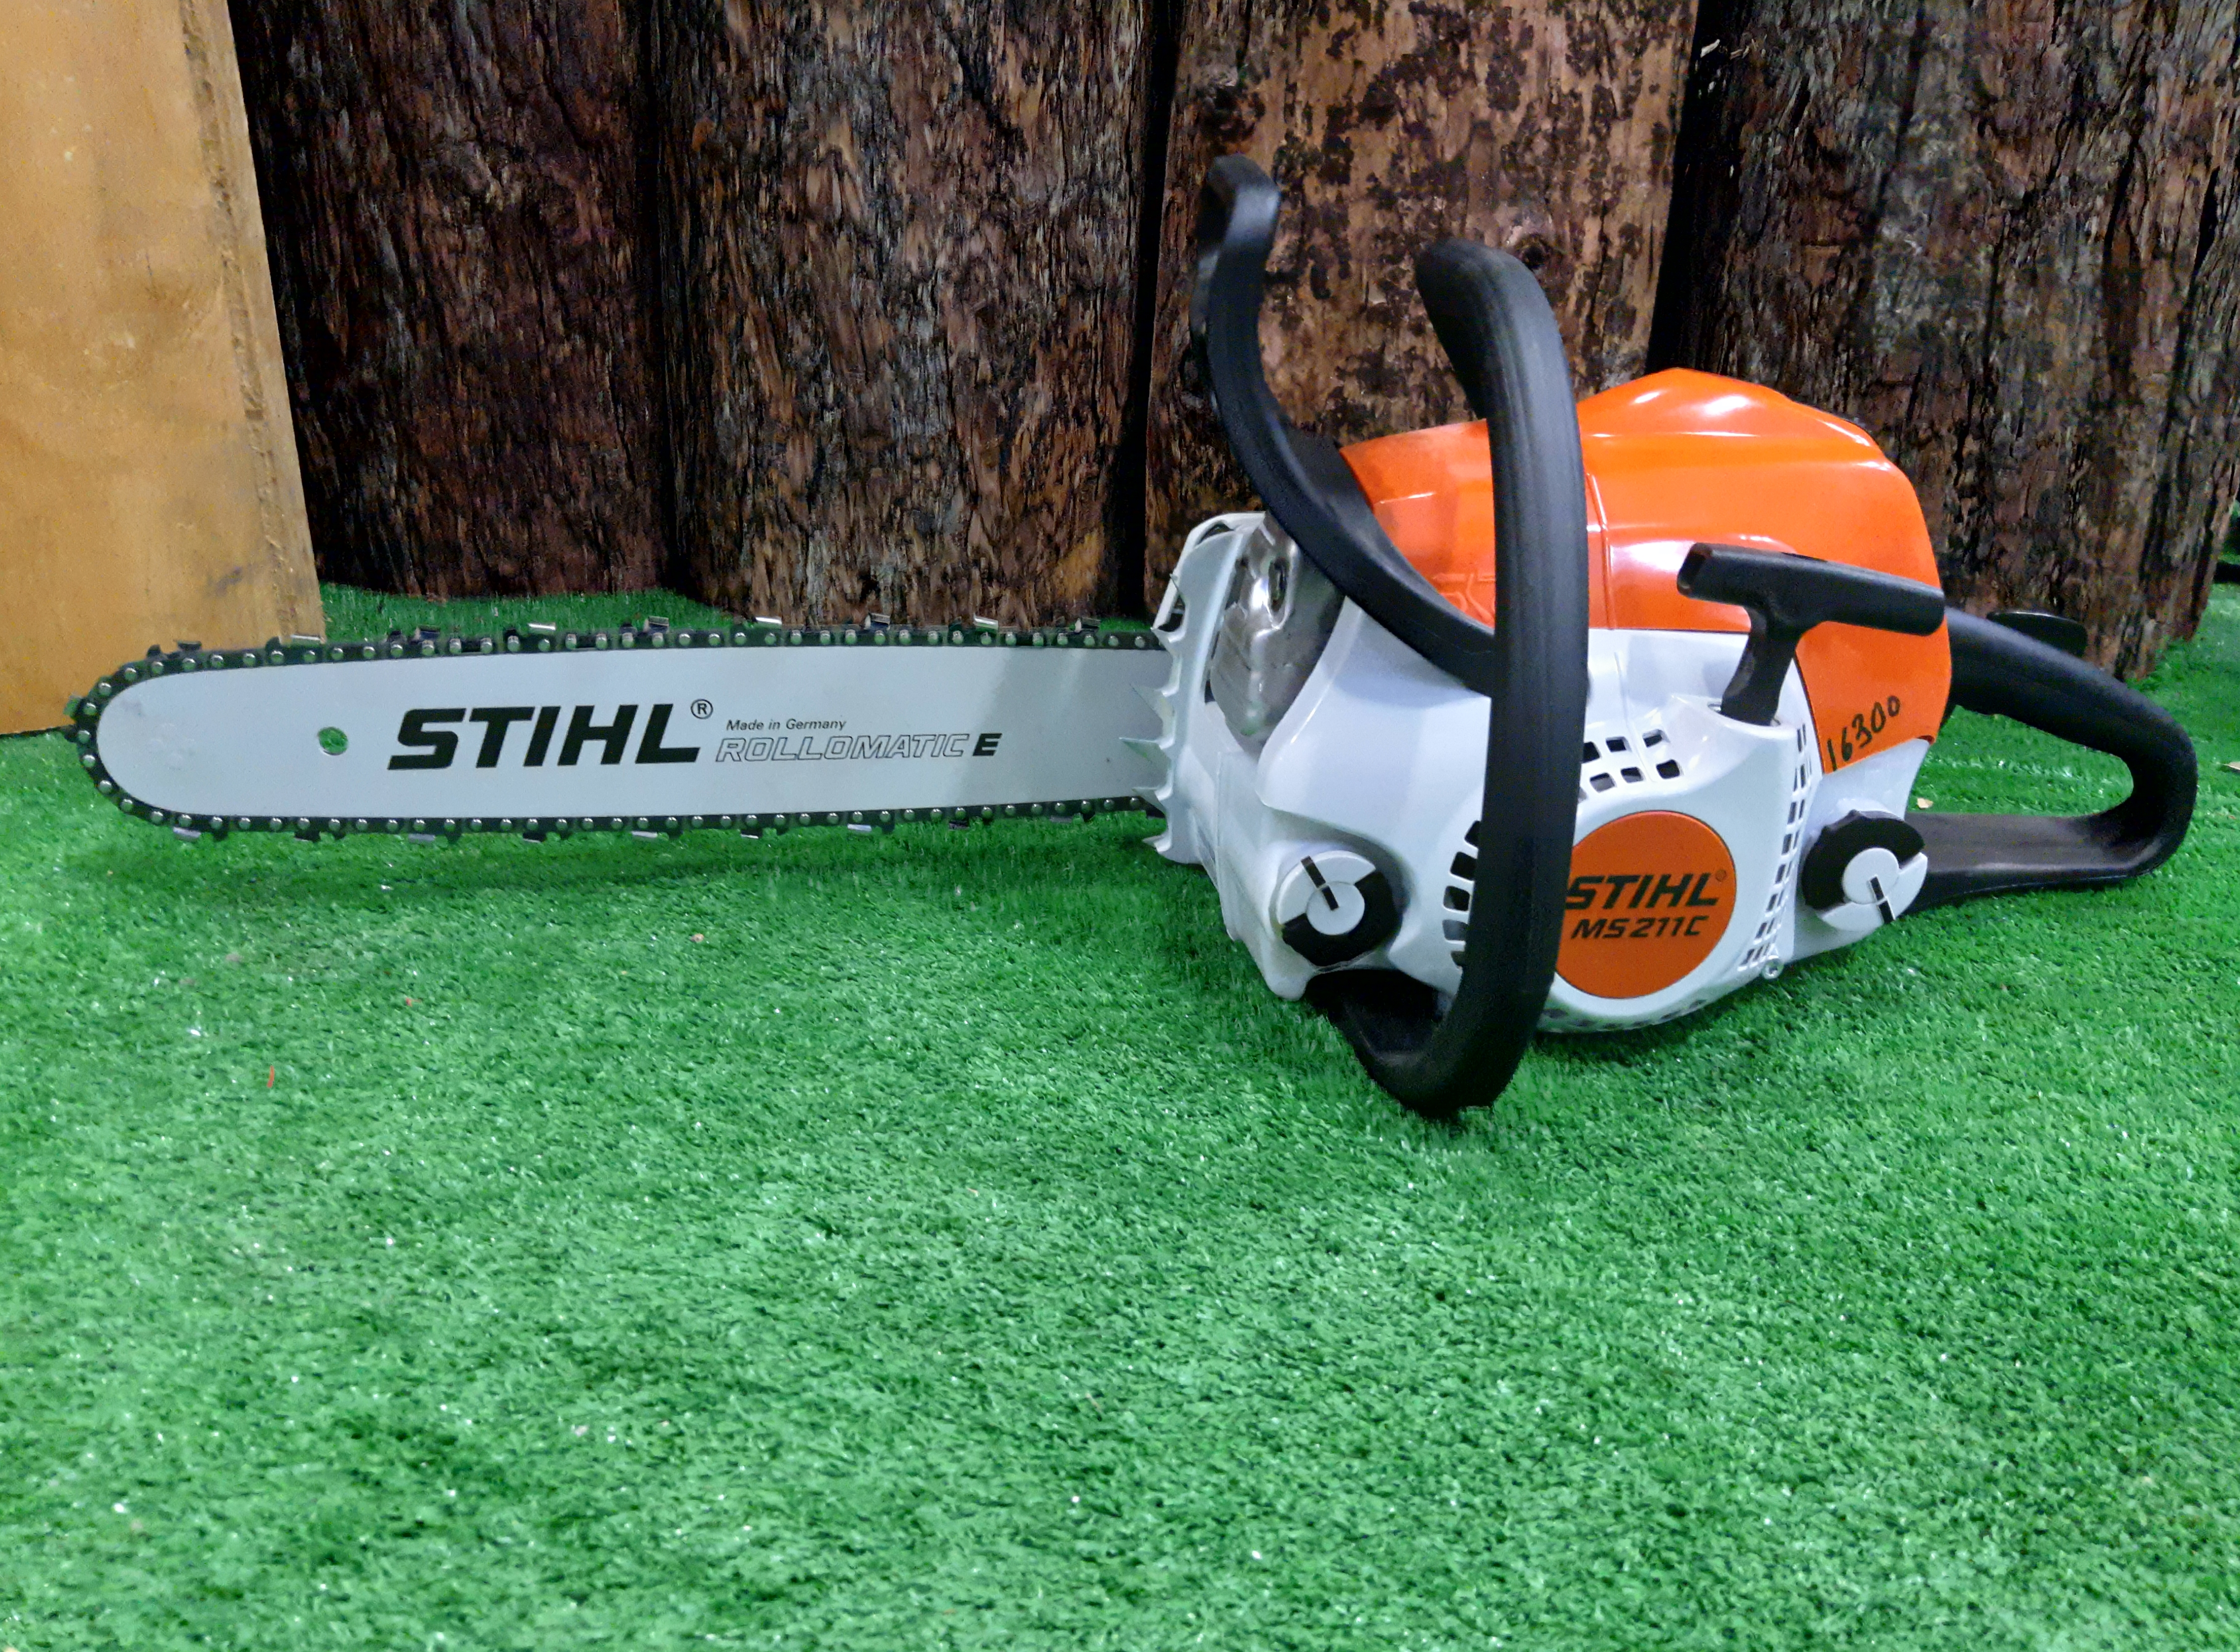 Бензопила Stihl MS211 C-BE 40 см